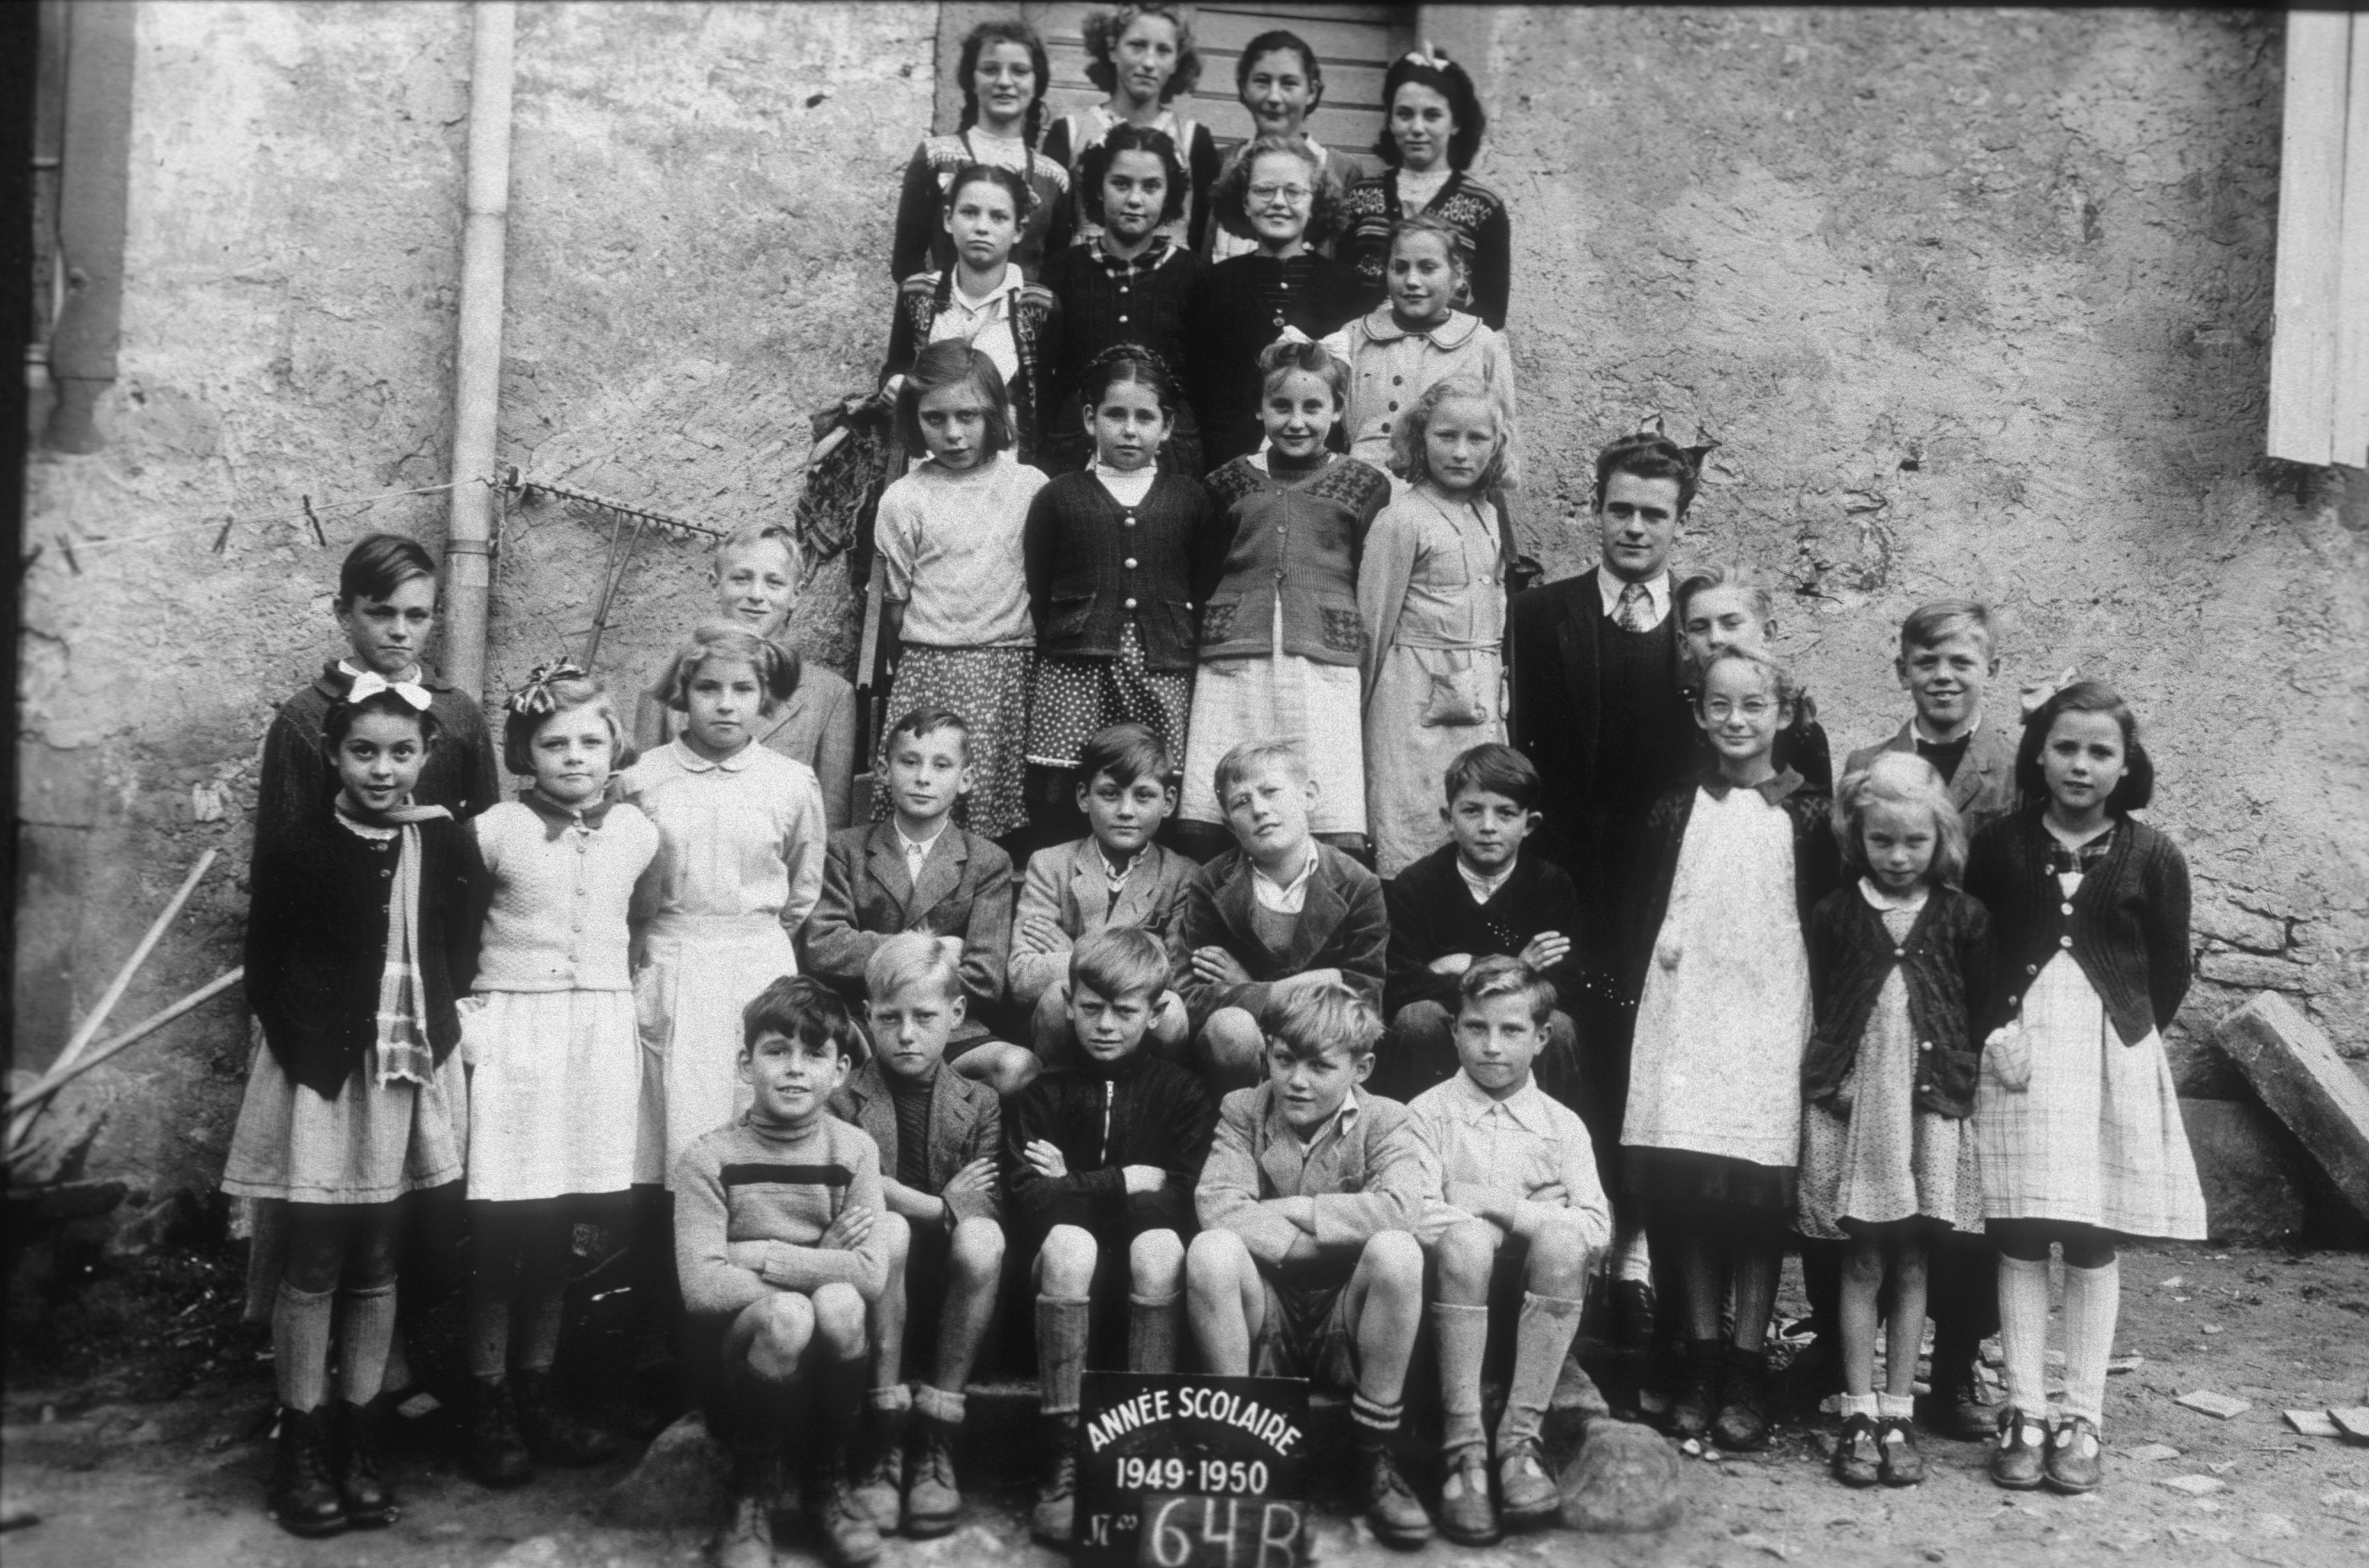 351 ANNEE SCOLAIRE 1949 50